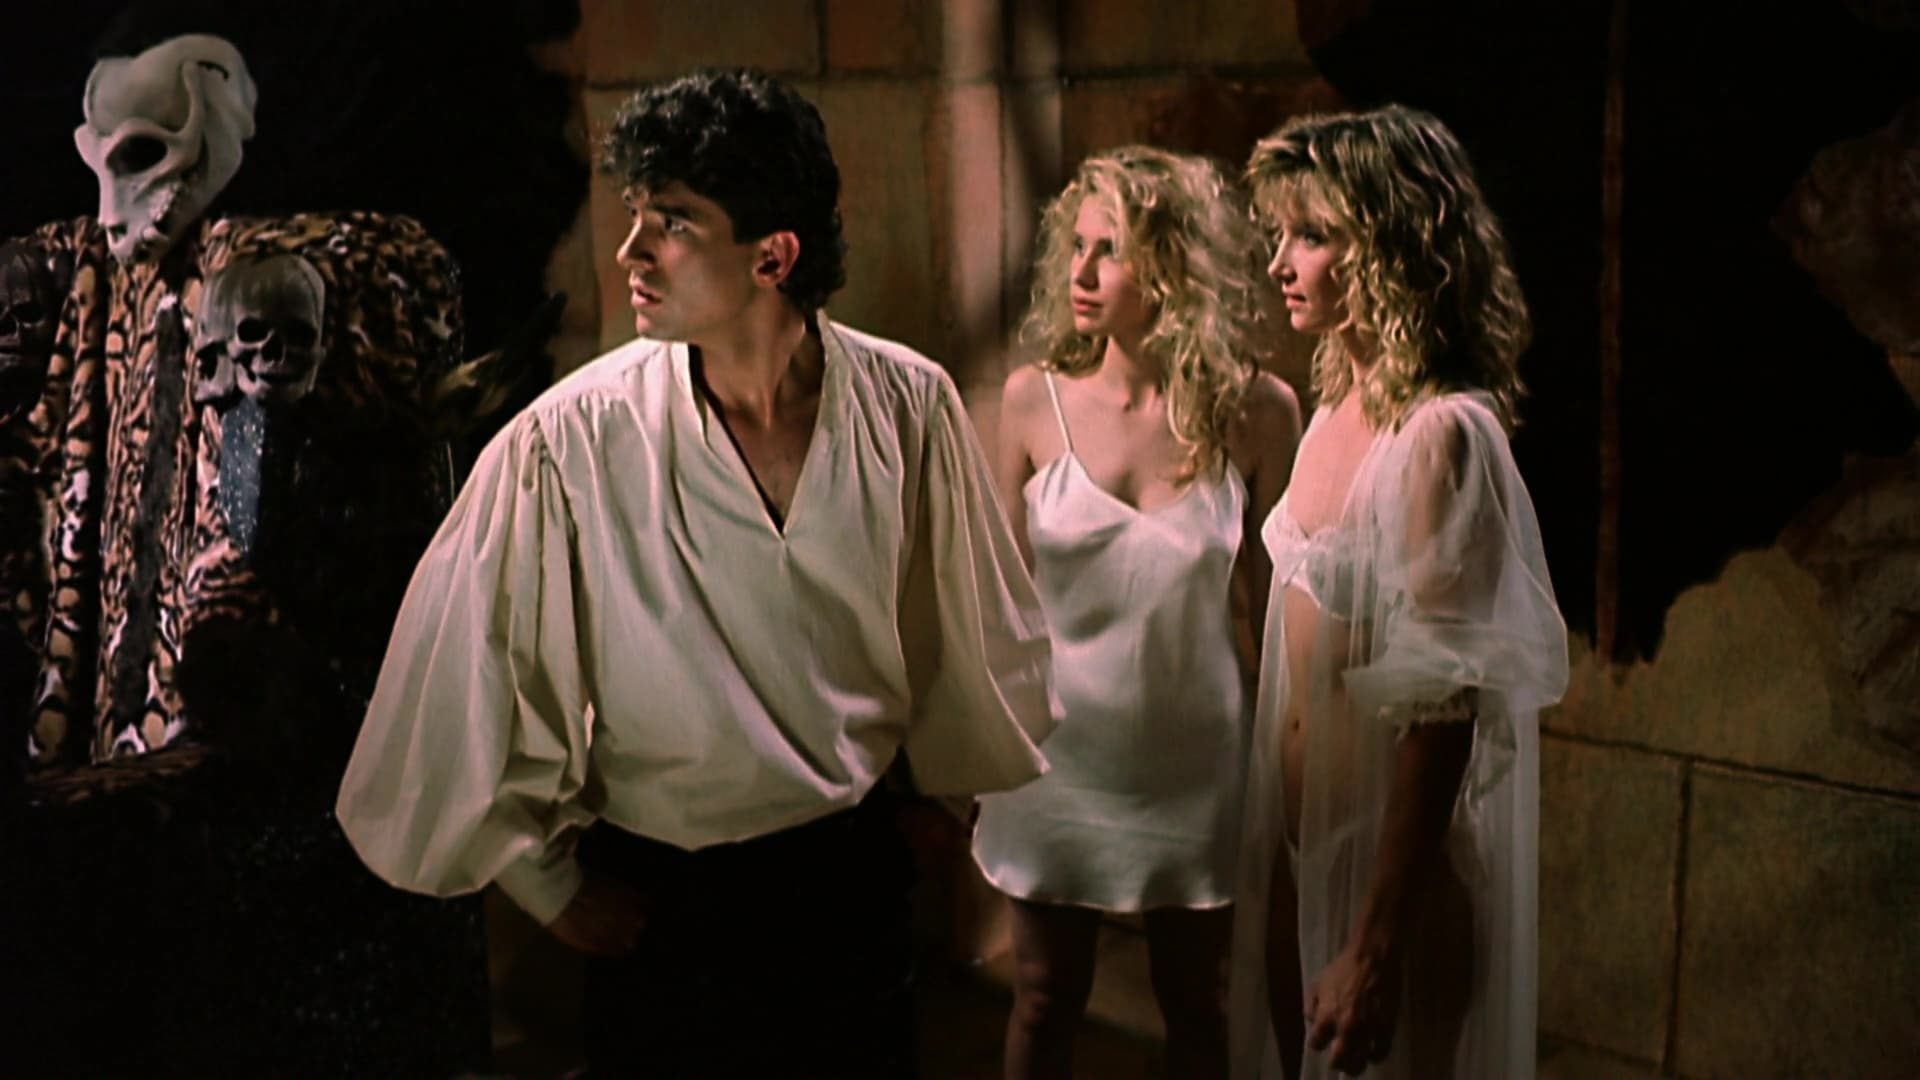 (l to r) Zed (Don Scribner), Dara (Elizabeth Cayton, later known as Elizabeth Kaitan) and Tisa (Cindy Beal) in Slave Girls from Beyond Infinity (1987)